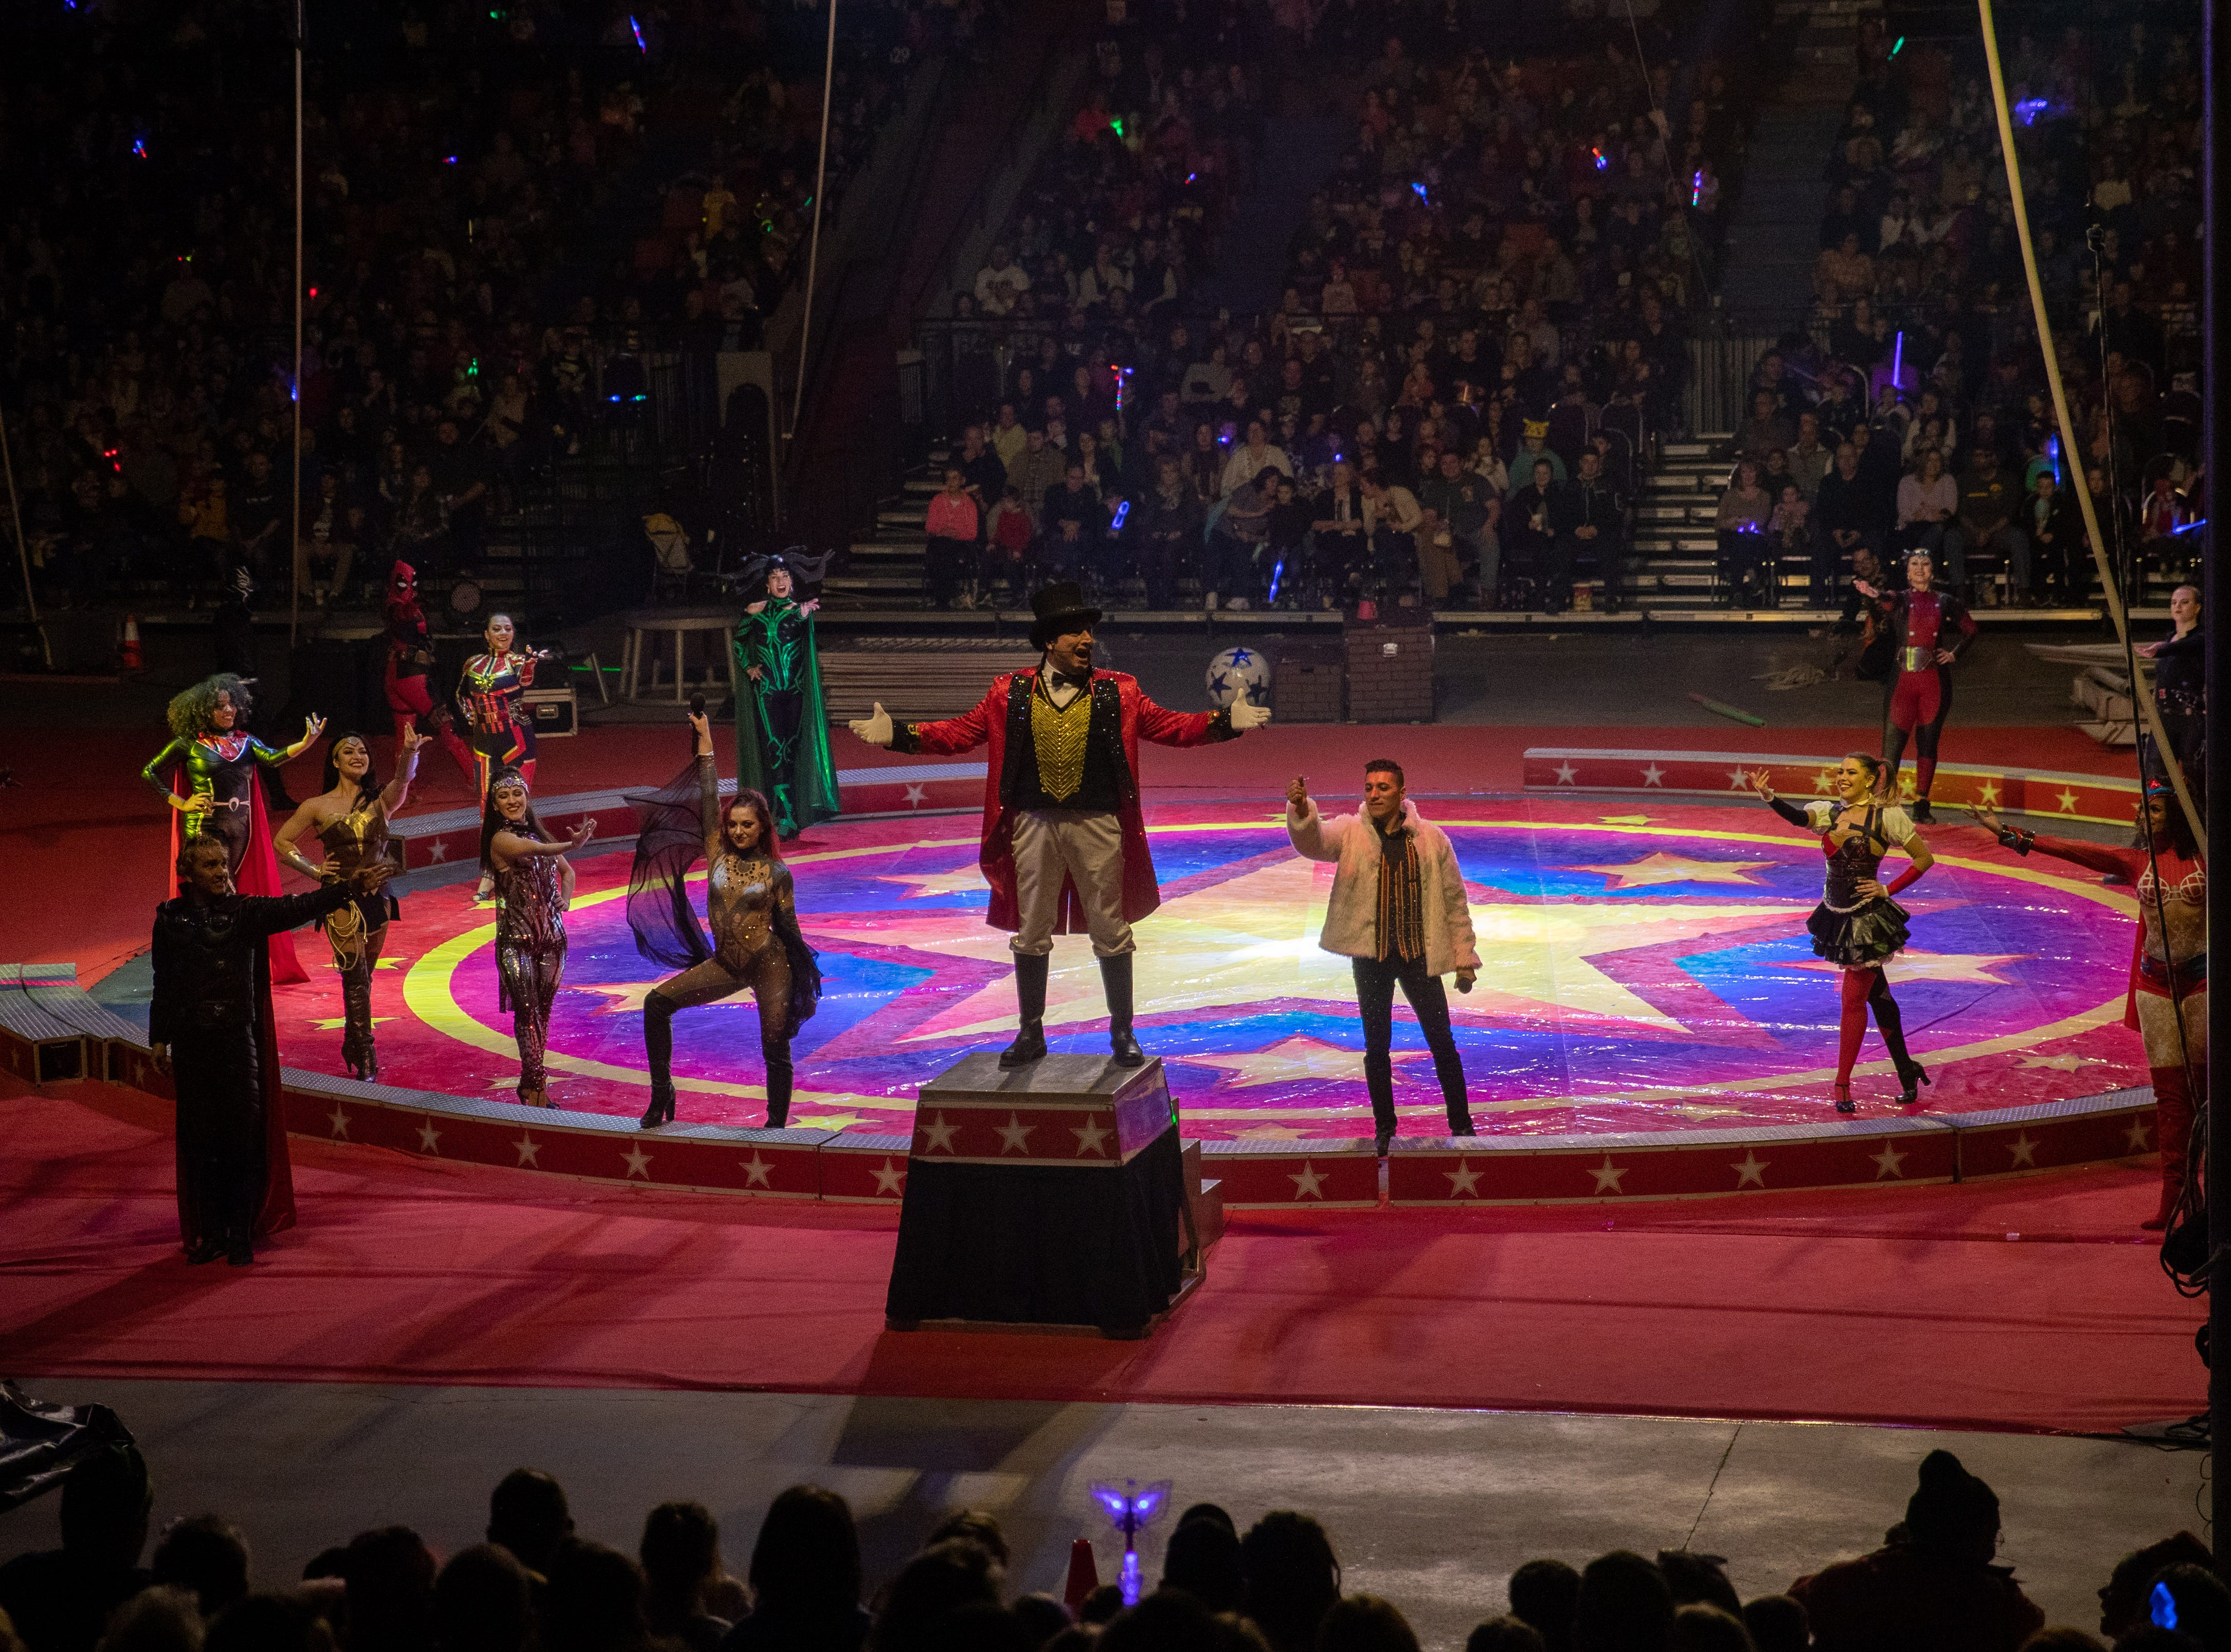 Opening the show, the ringmaster arises to the pedestal, Saturday, Feb. 9, 2019 in Louisville Ky.